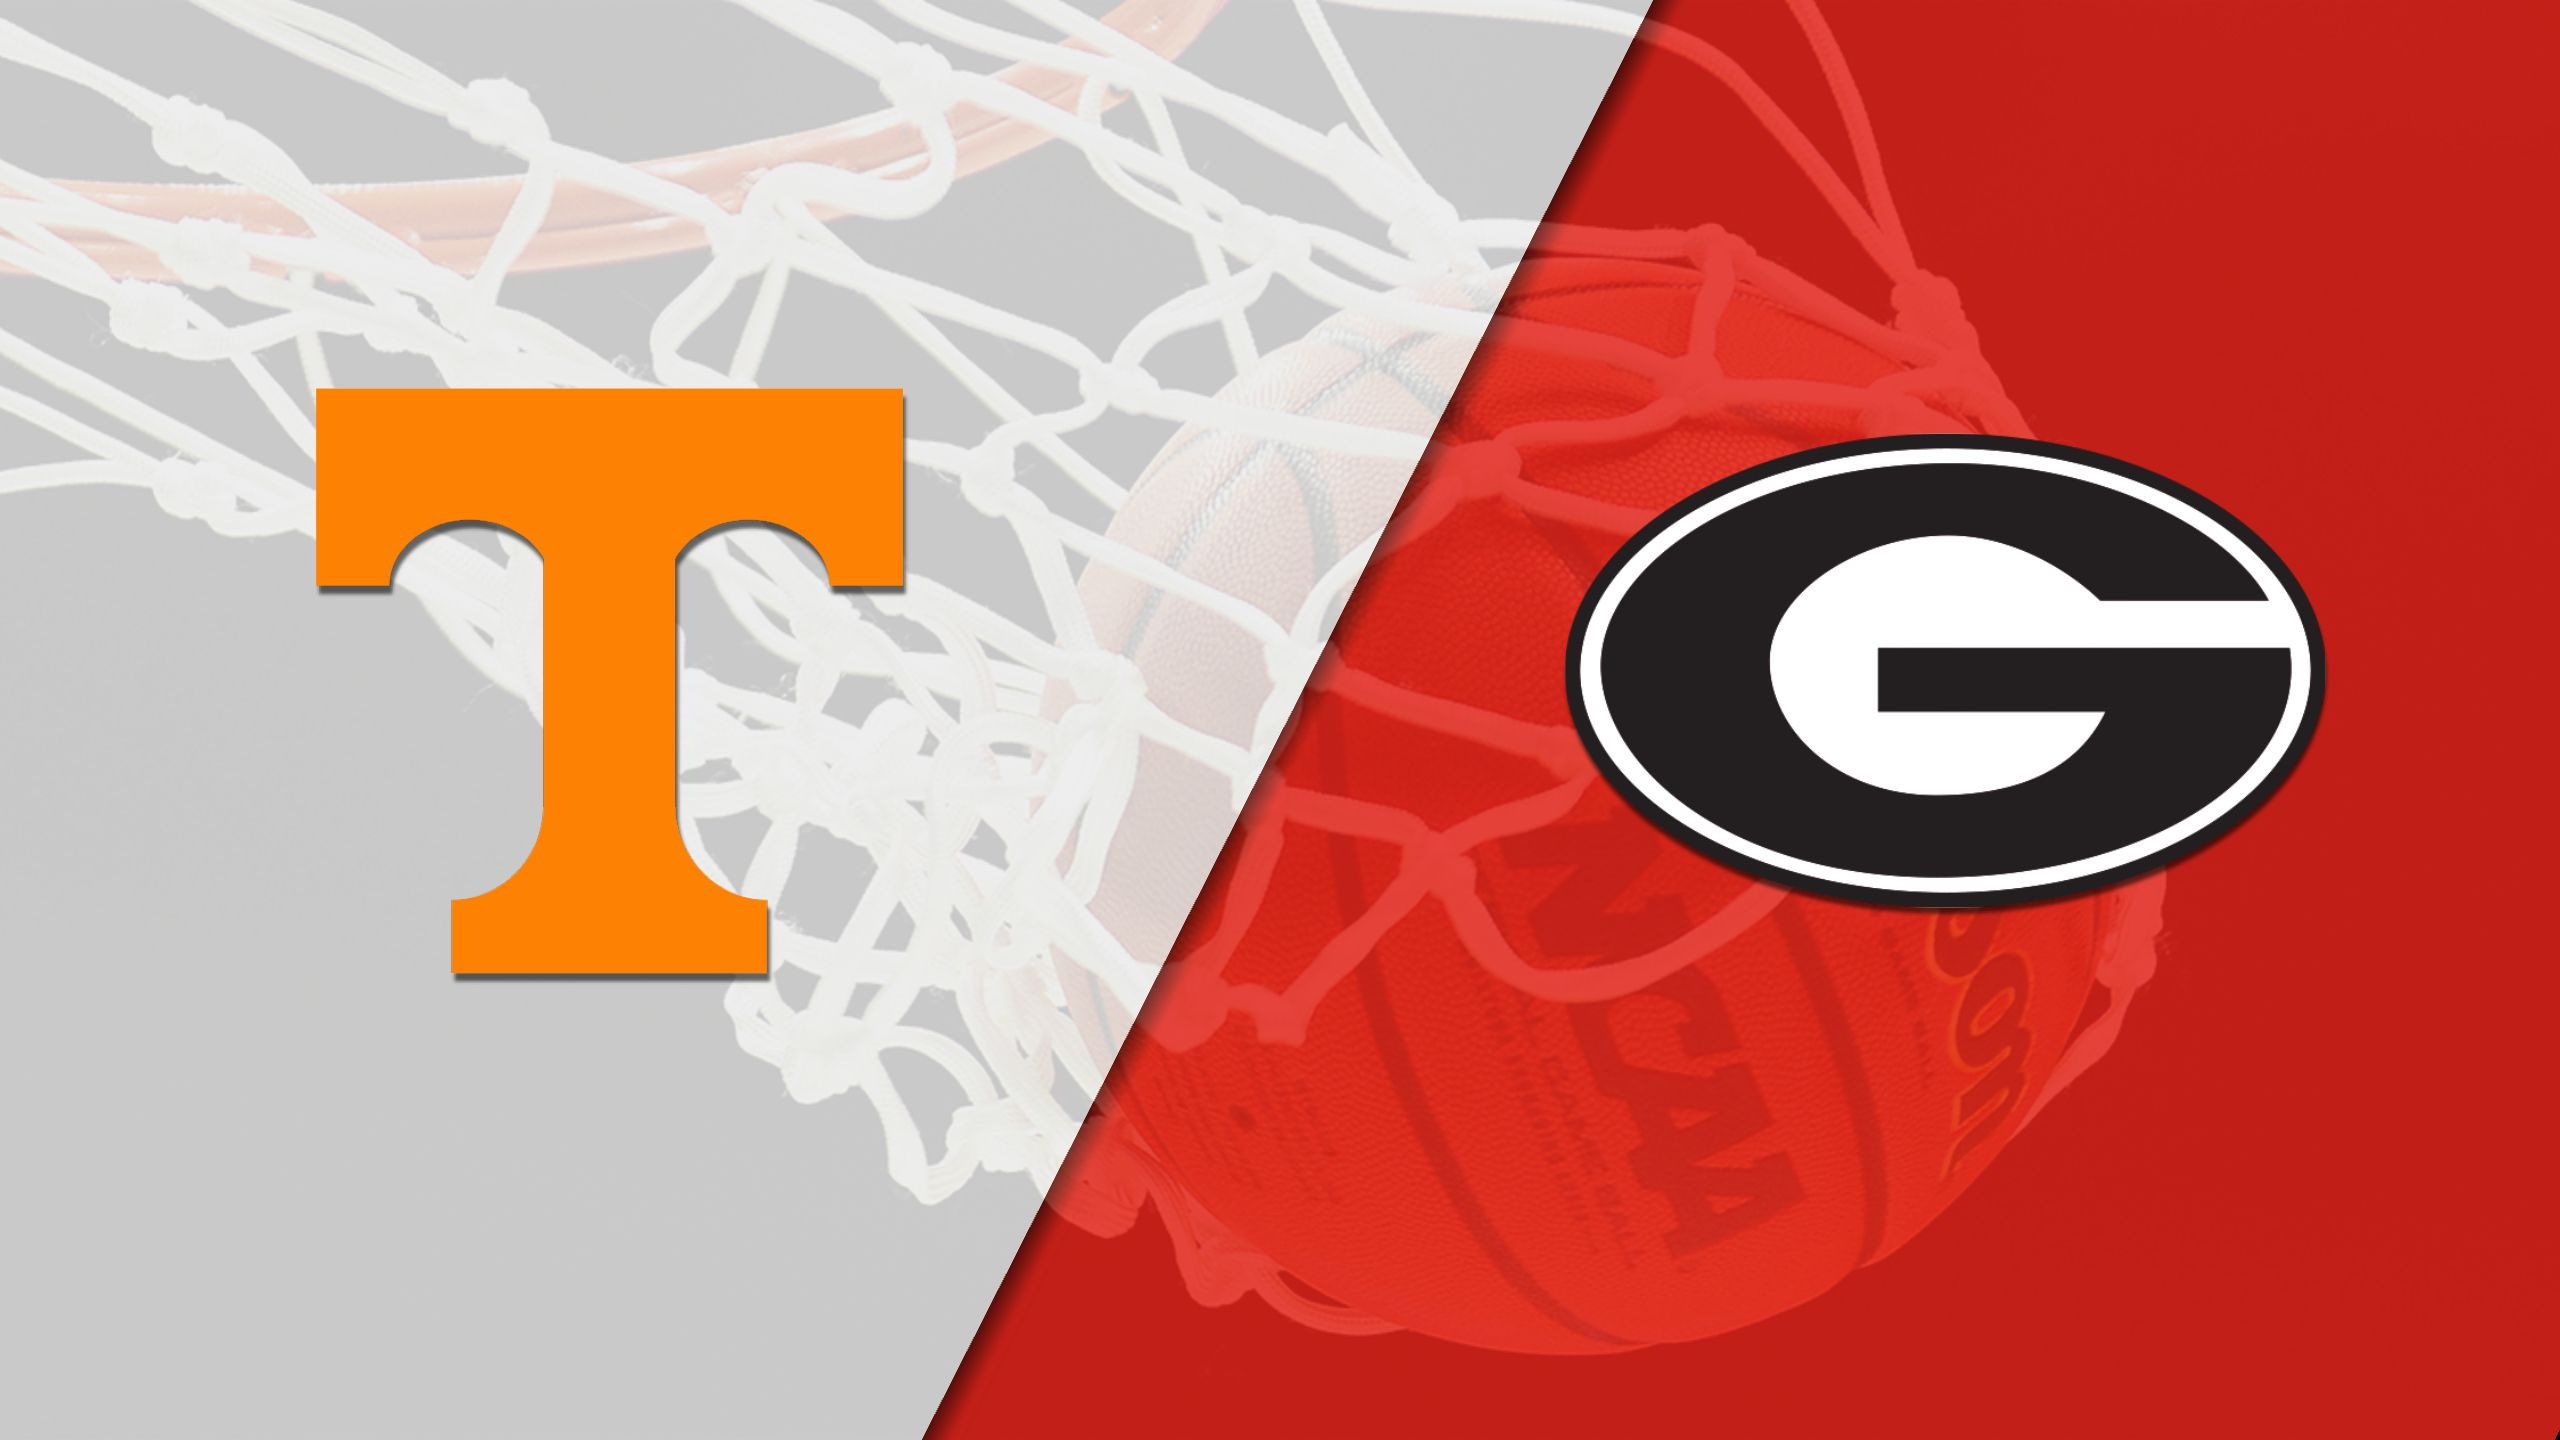 #18 Tennessee vs. Georgia (M Basketball)